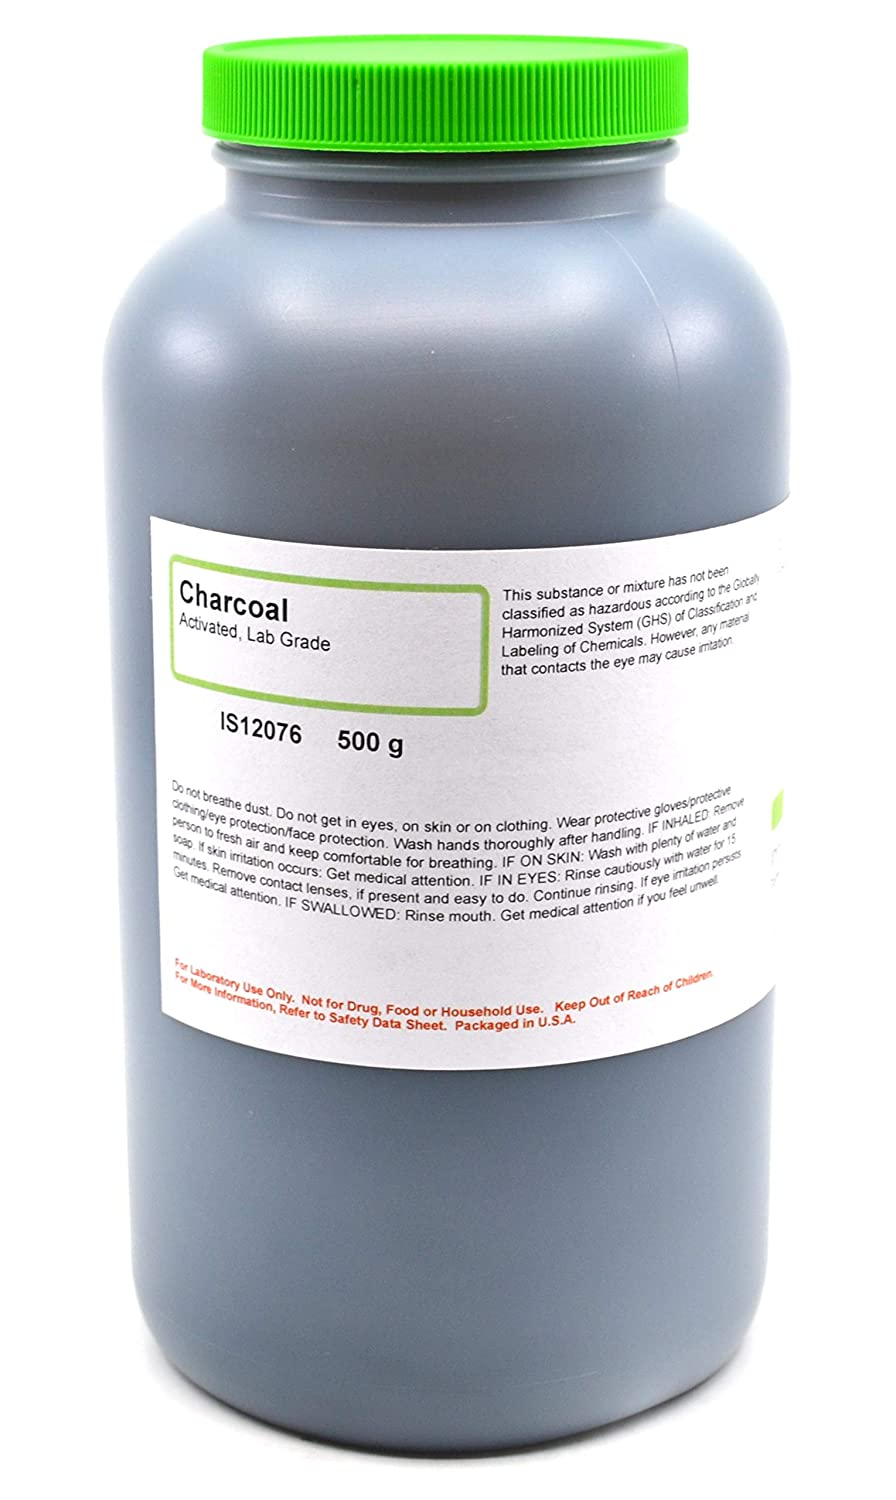 Laboratory-Grade Activated Charcoal, 500g - The Curated Chemical Collection